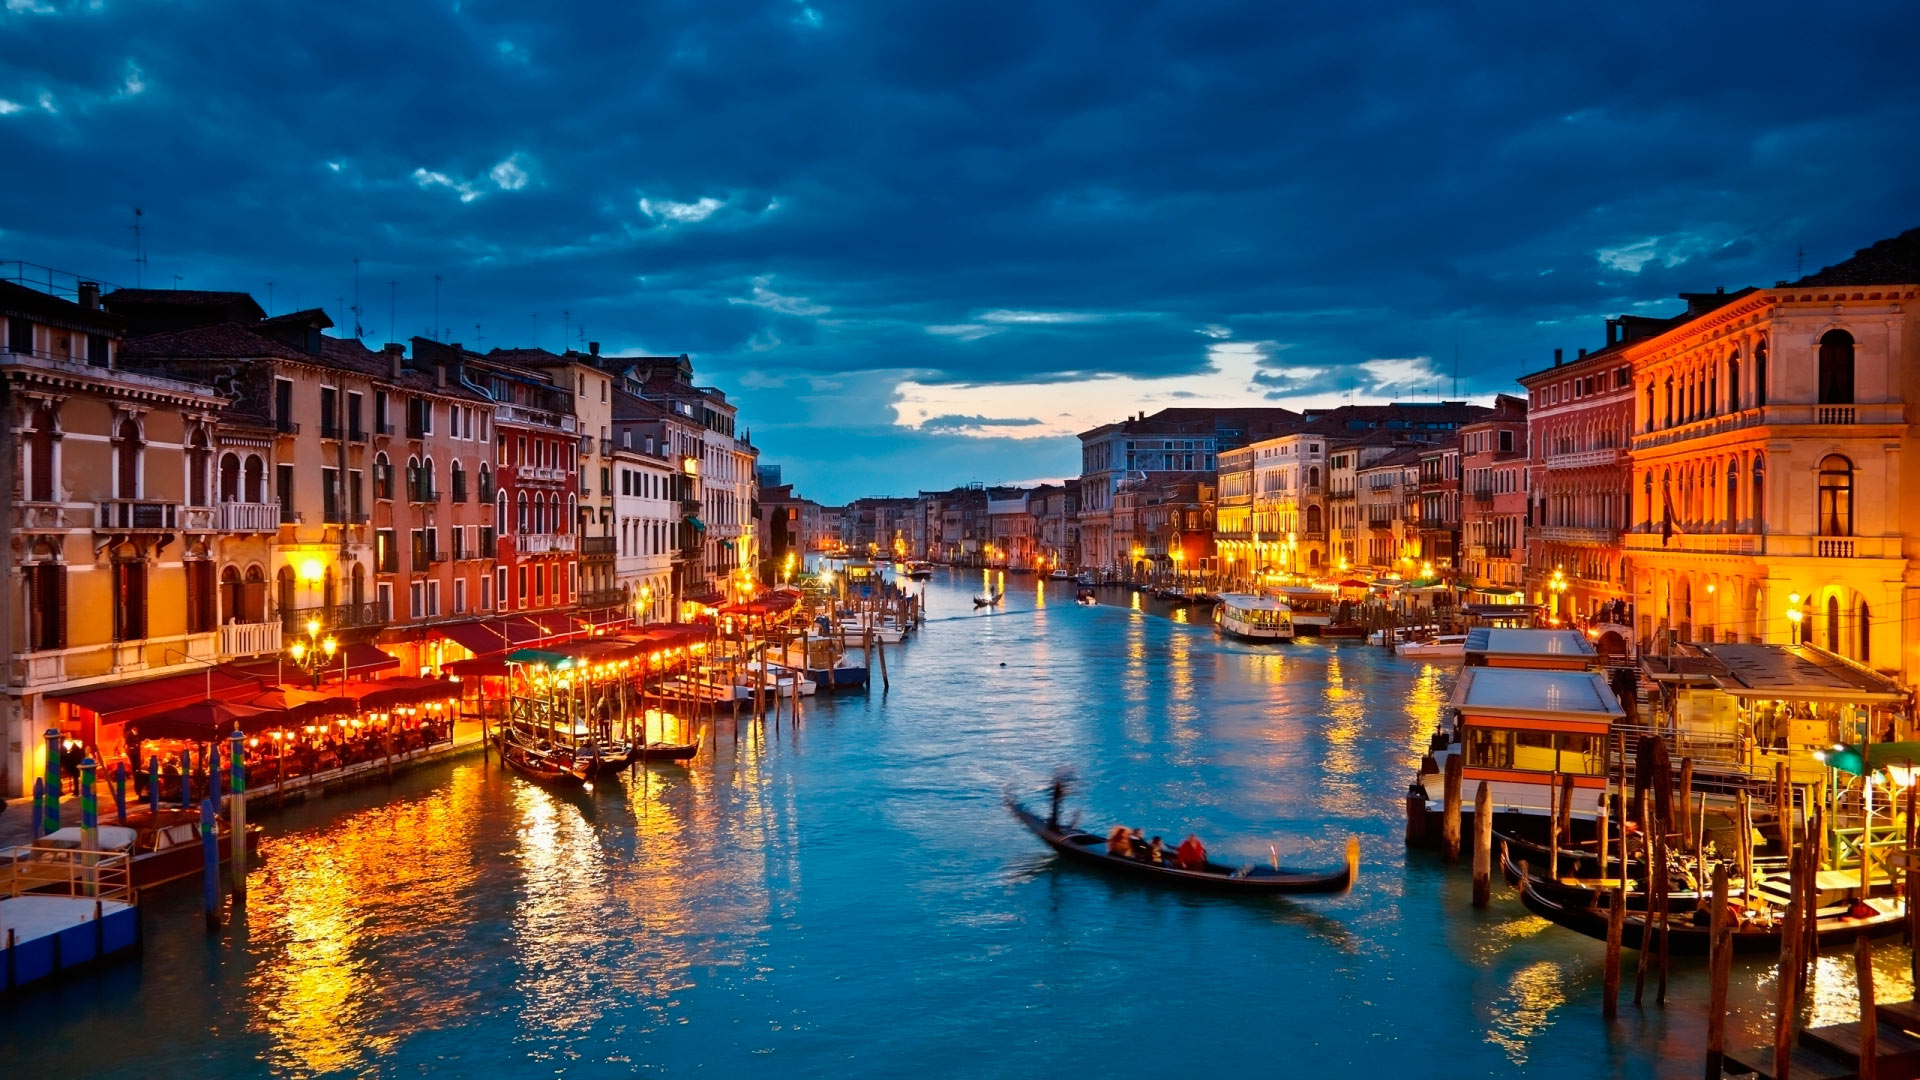 According to new research, rising sea levels could cause Venice to completely disappear underwater within the next 100 years.